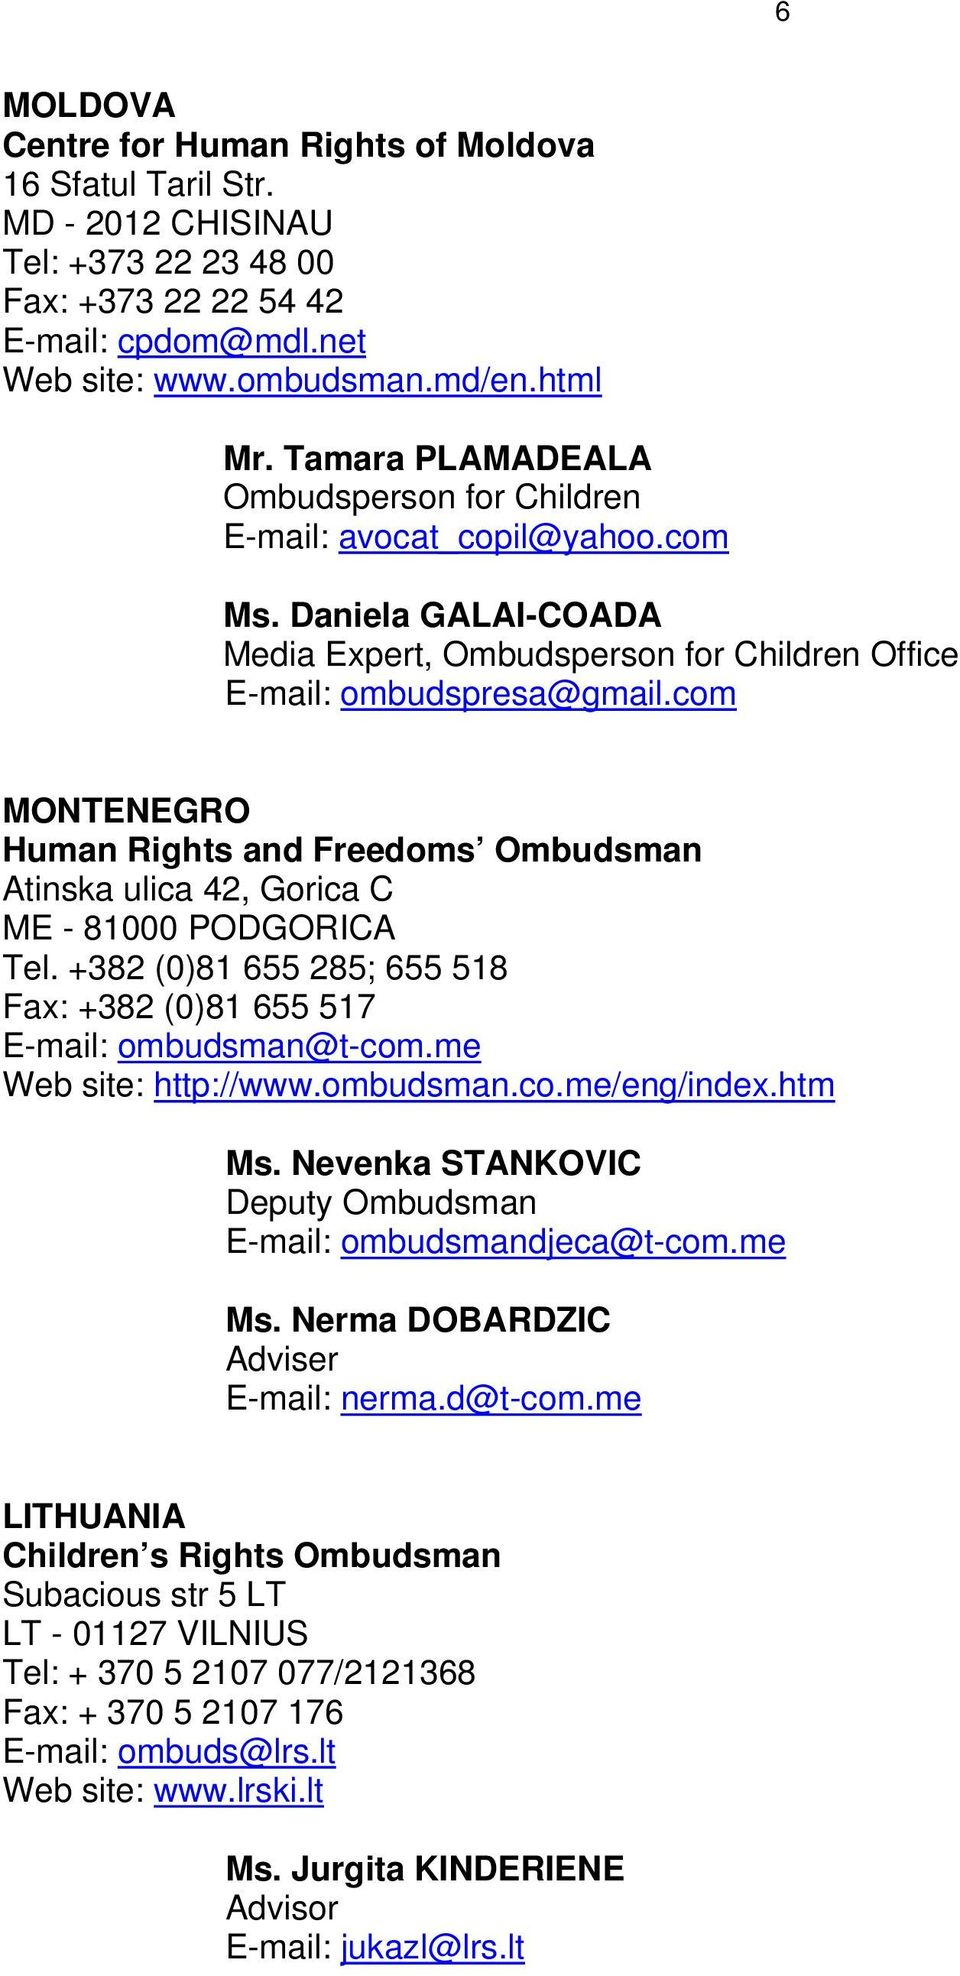 com MONTENEGRO Human Rights and Freedoms Ombudsman Atinska ulica 42, Gorica C ME - 81000 PODGORICA Tel. +382 (0)81 655 285; 655 518 Fax: +382 (0)81 655 517 E-mail: ombudsman@t-com.